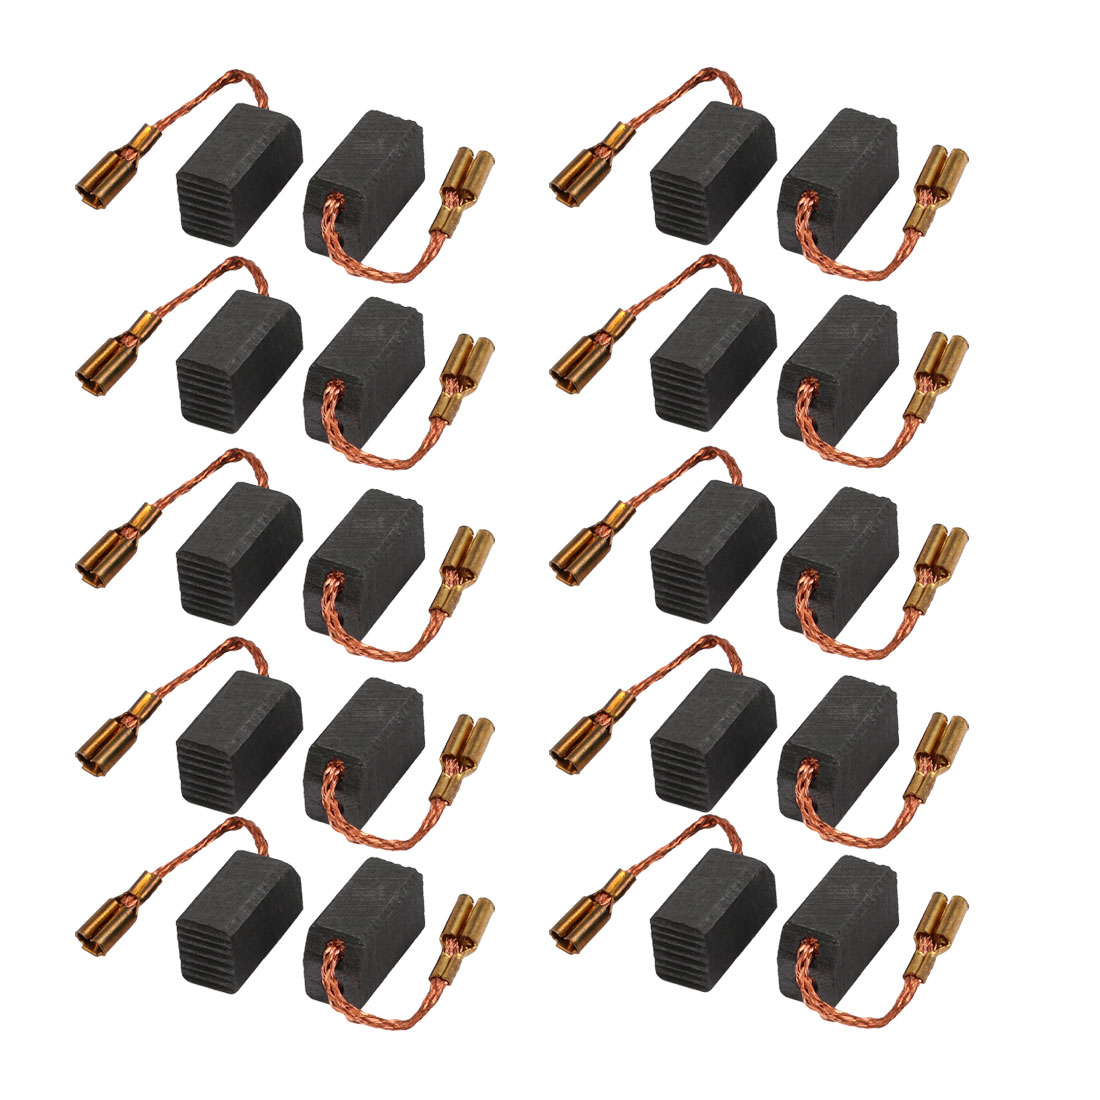 10Pcs 13mmx8mmx6mm Carbon Brushes Power Tool for Electric Hammer Drill Motor